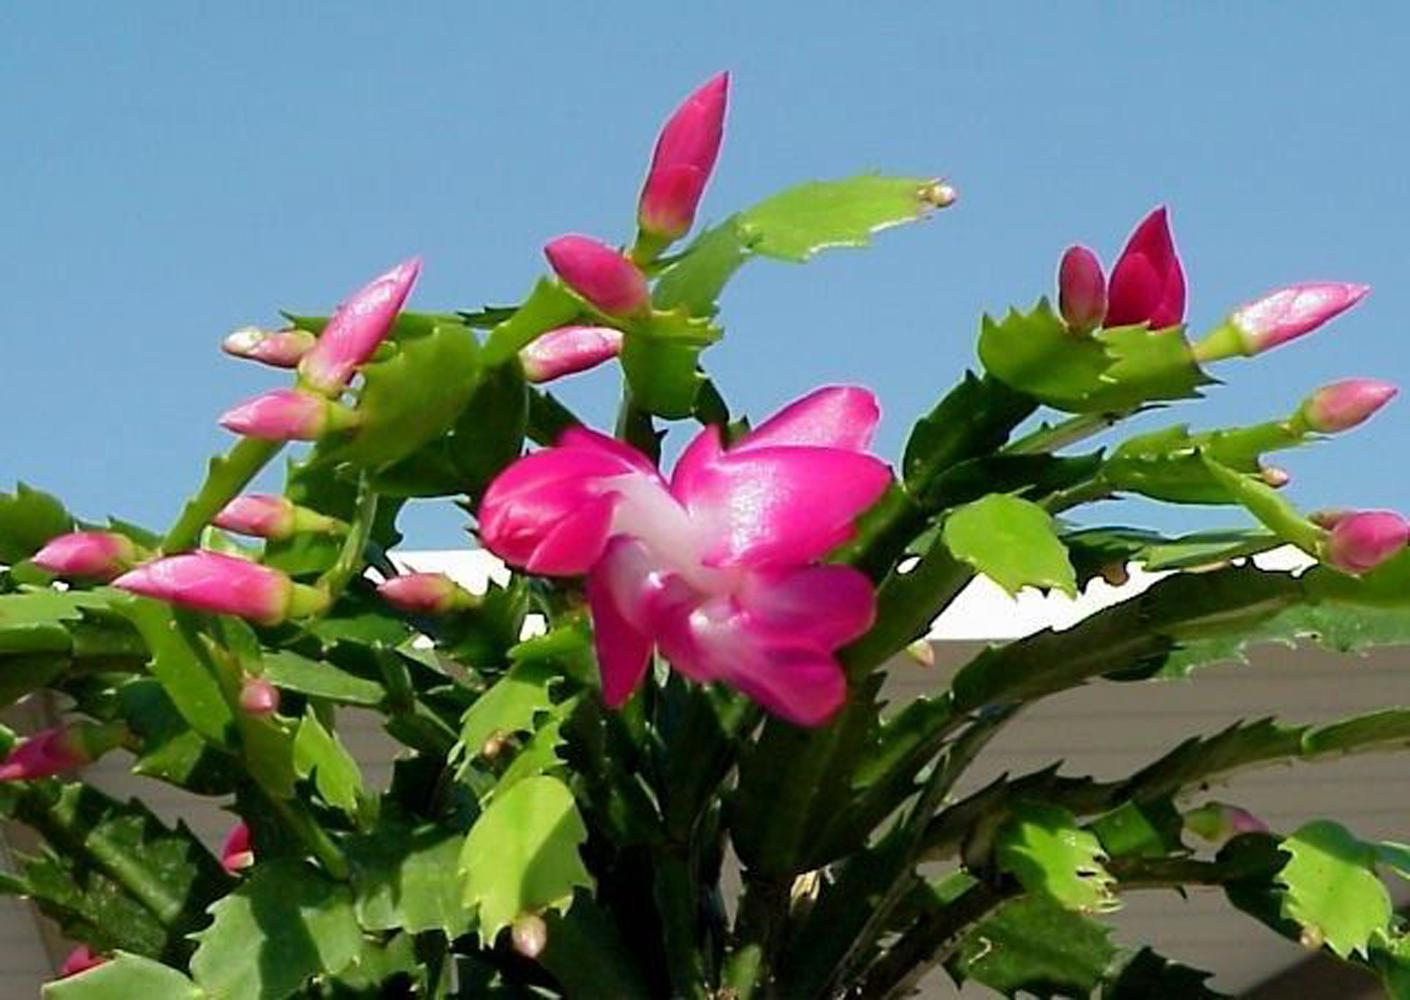 This Christmas cactus is beautiful outside on a warm winter day, but most of the time these dependable holiday plants brighten up special areas inside the home.